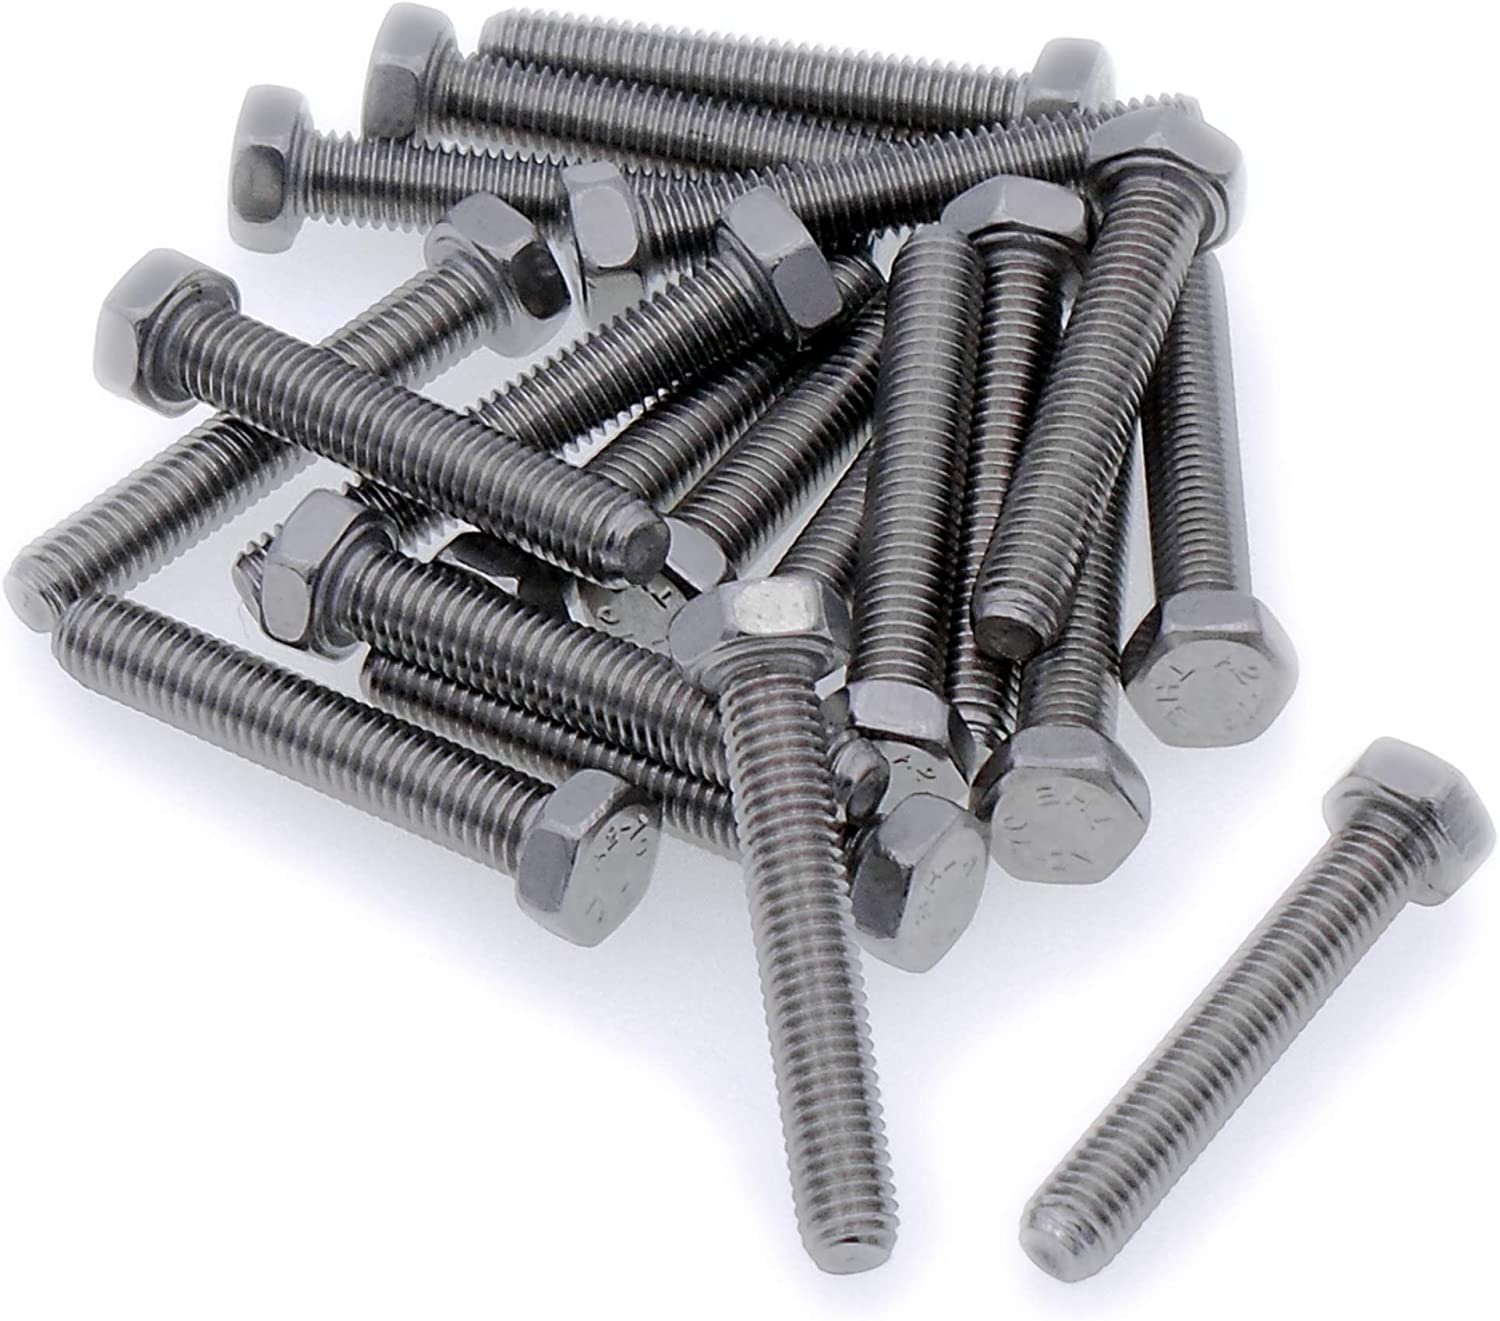 Fully Threaded Setscrew - Stainless Steel A2 Hex Bolt M3 3mm x 16mm Pack of 20